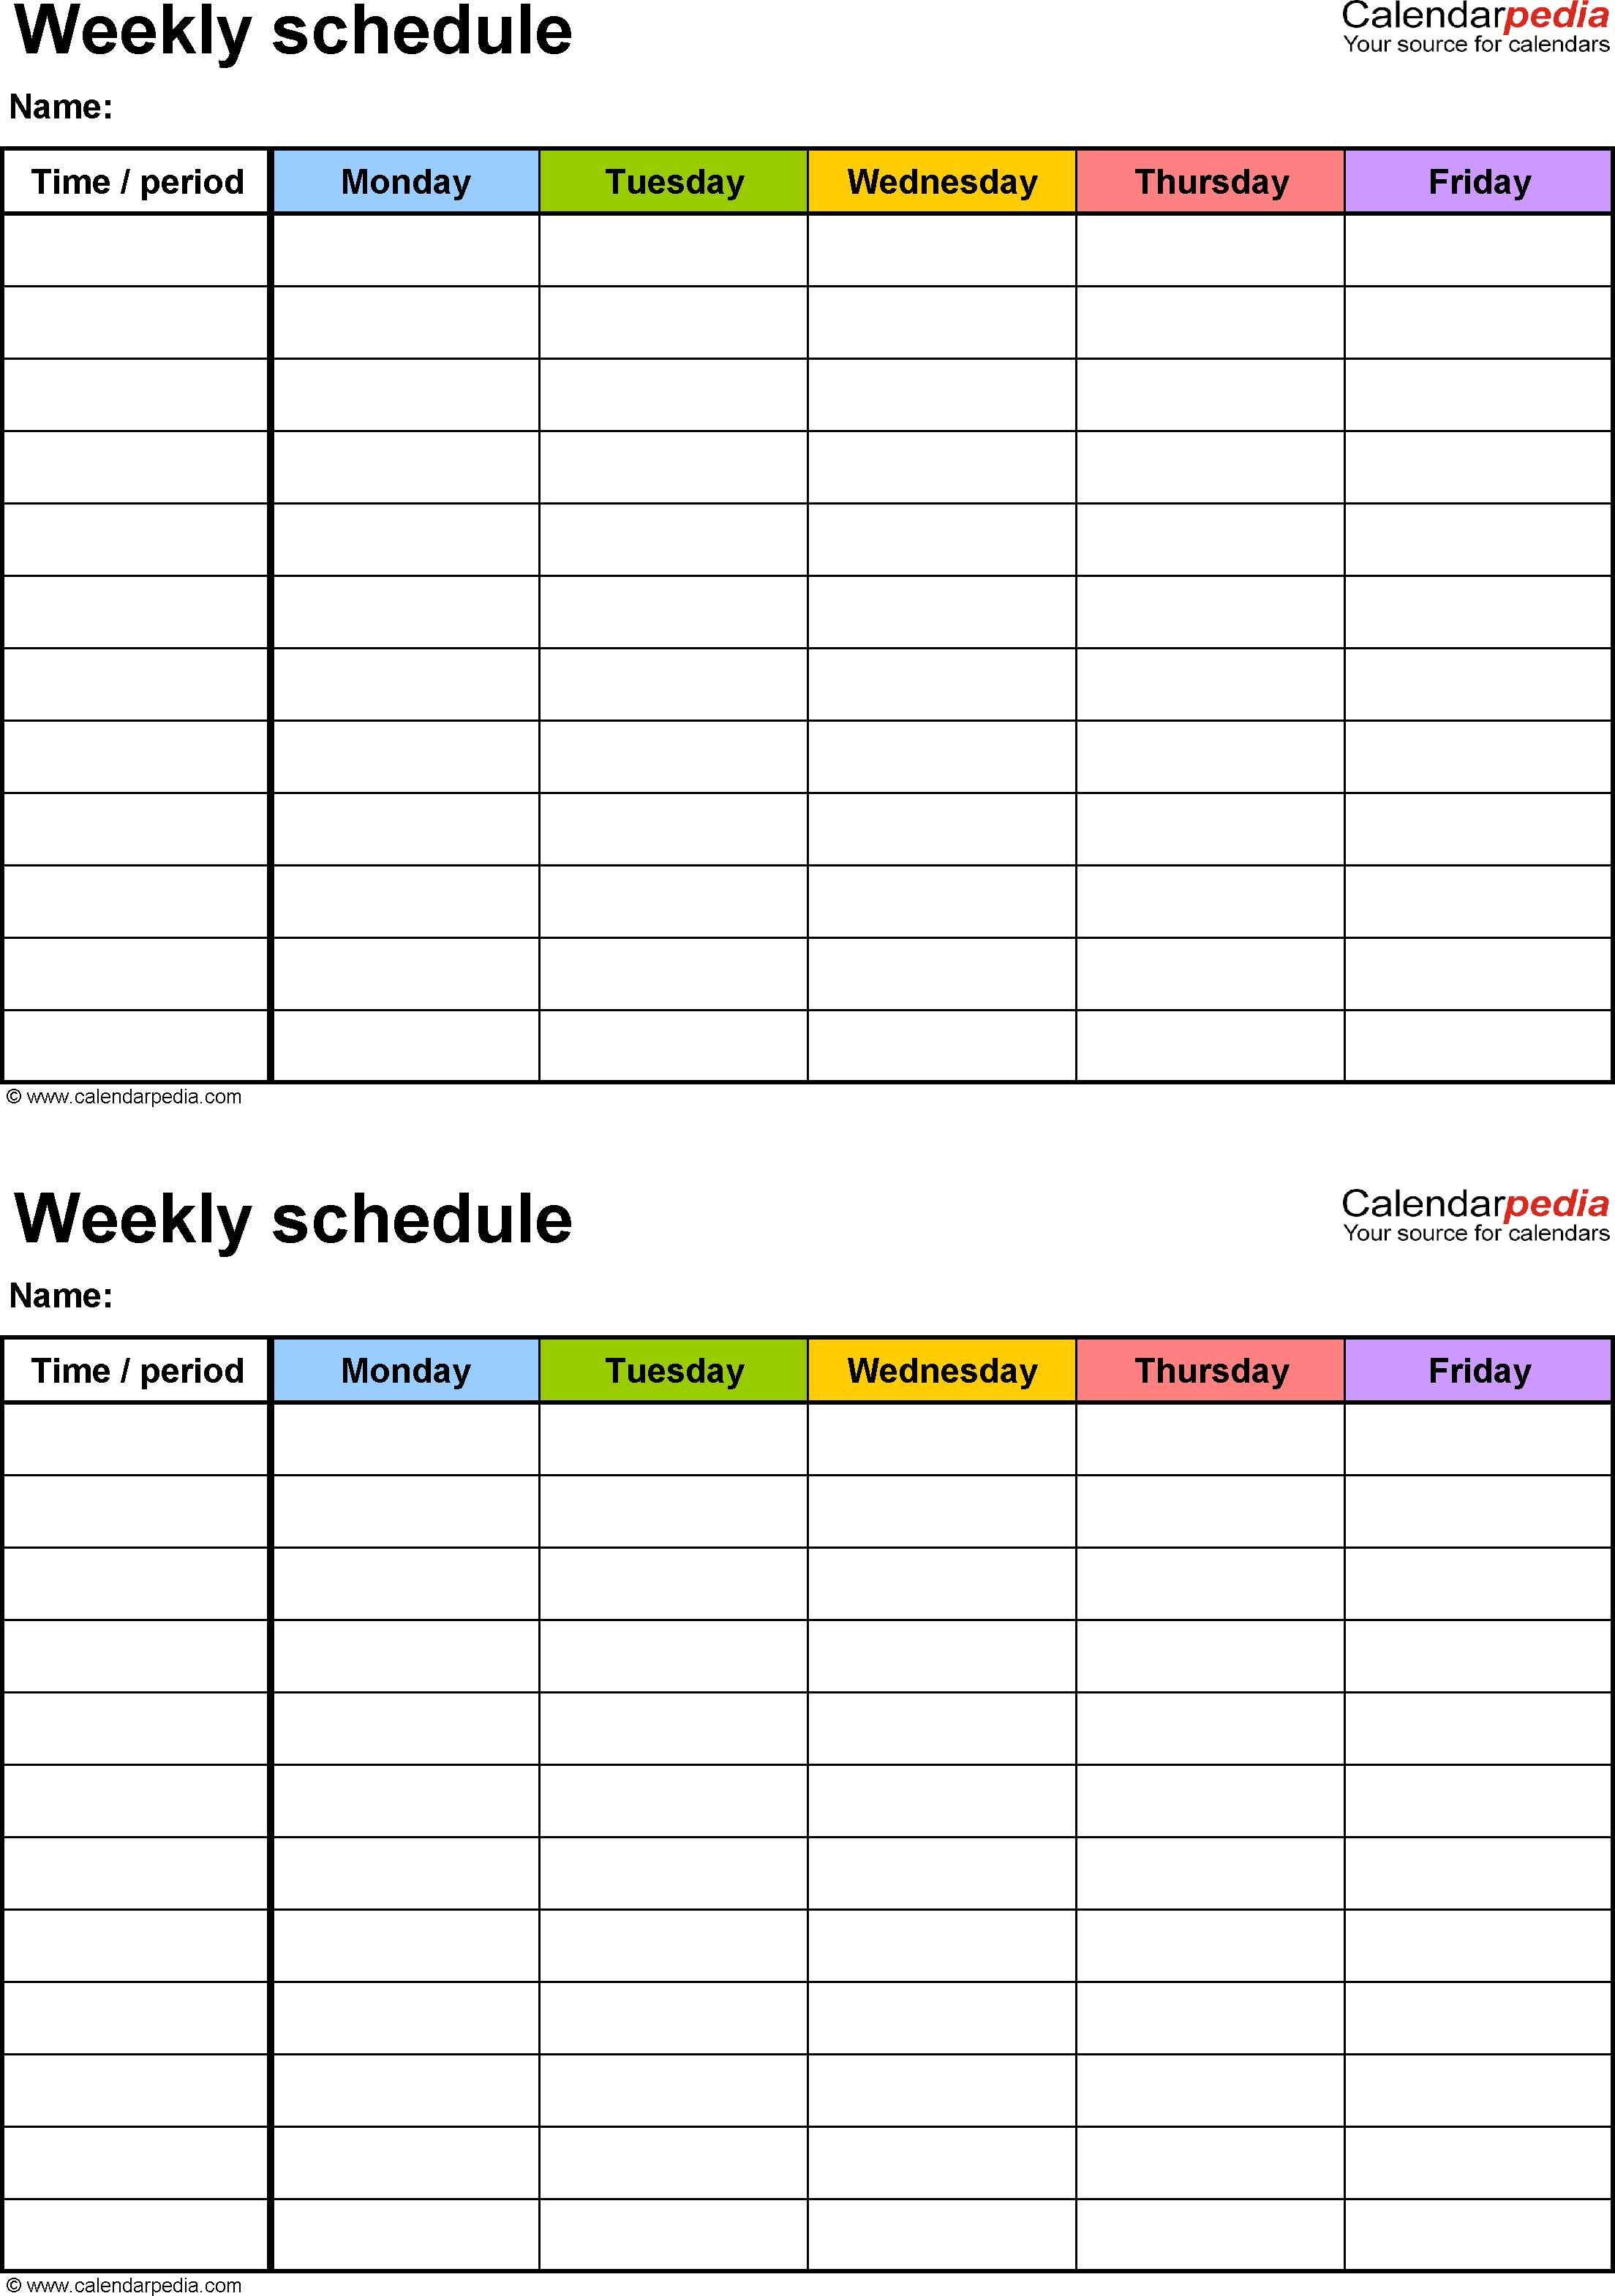 Free Weekly Schedule Templates For Excel - 18 Templates within Day And Time Calendar Template